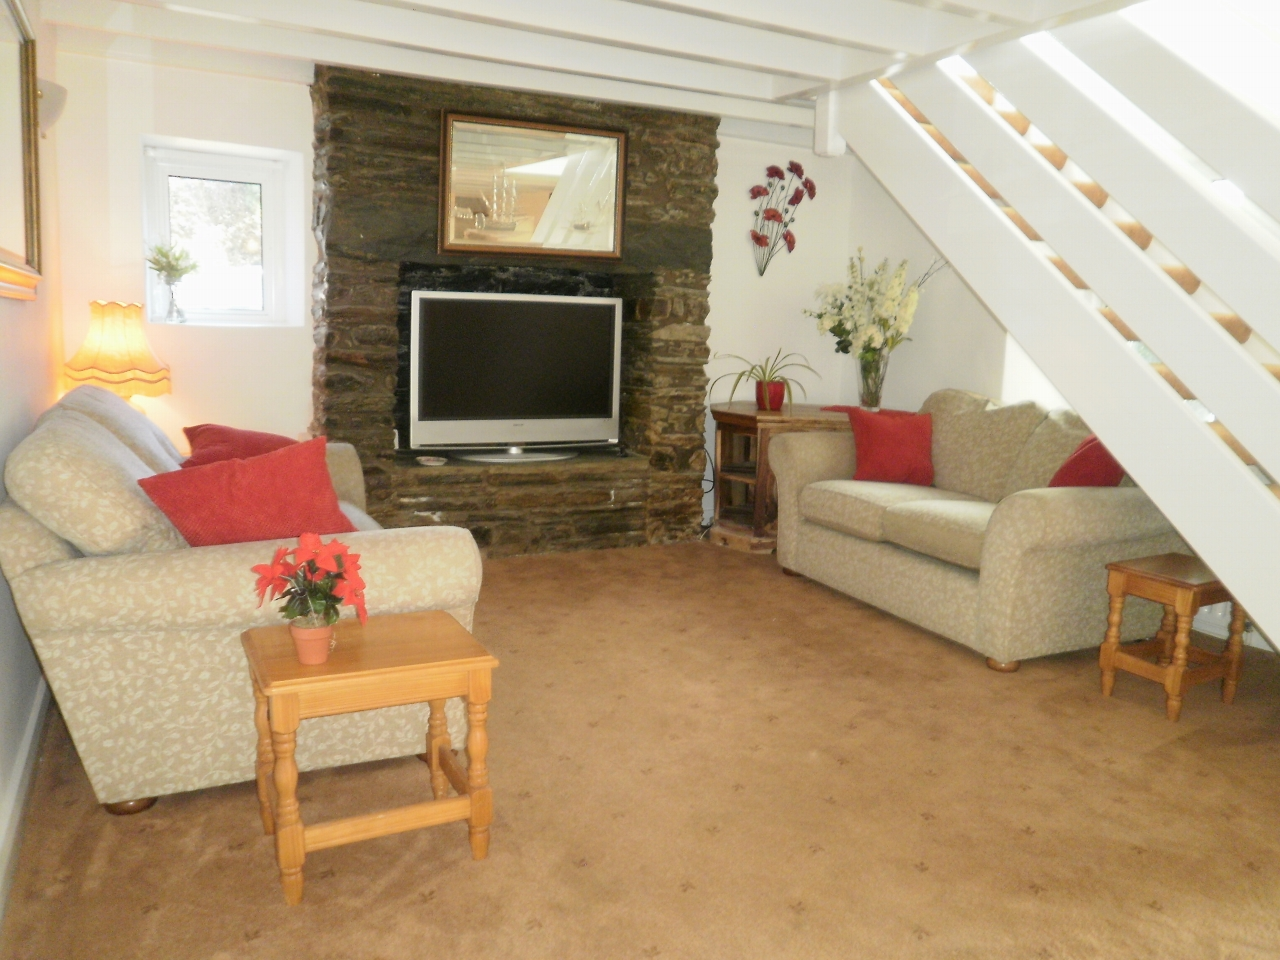 5 bedroom detached house SSTC in Colby - Photograph 33